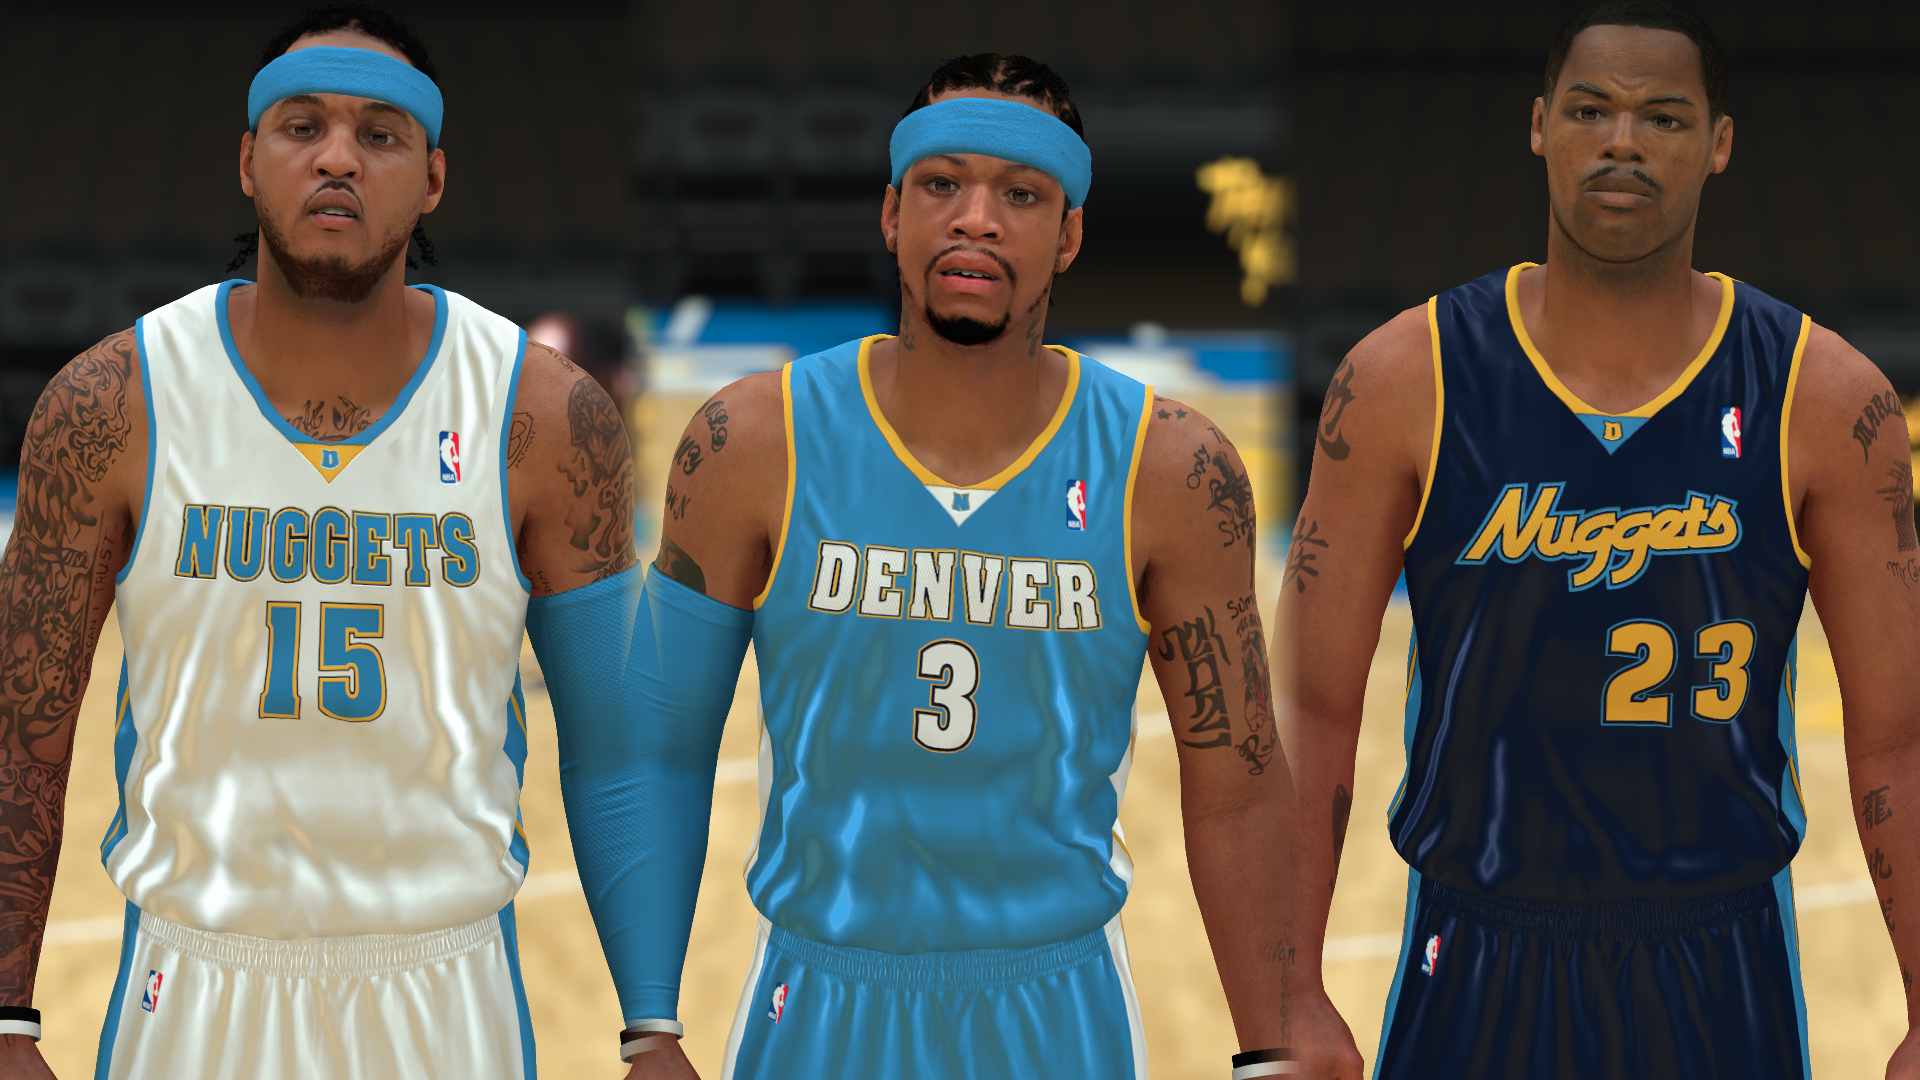 2007-2008 Nuggets Jerseys - PeacemanNOT